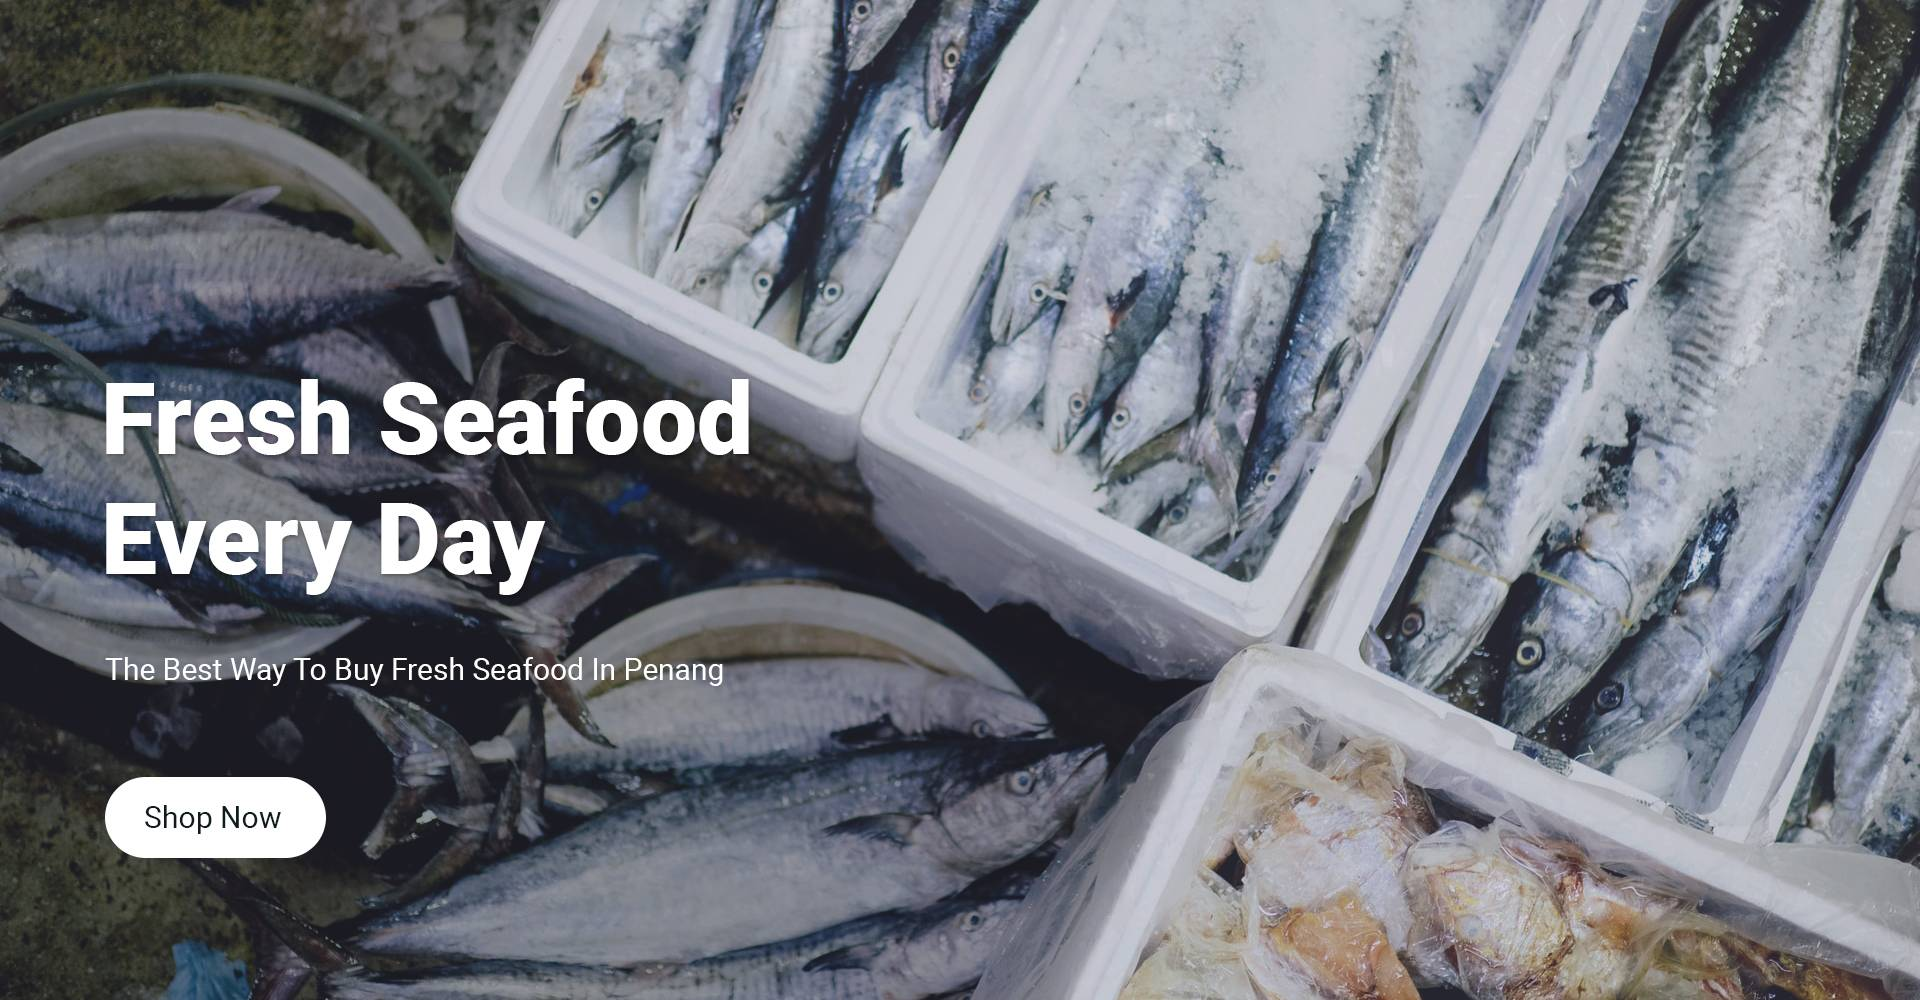 https://www.seafoodseafu.unicarttemplates.co/special?sg_type_pg=all_products